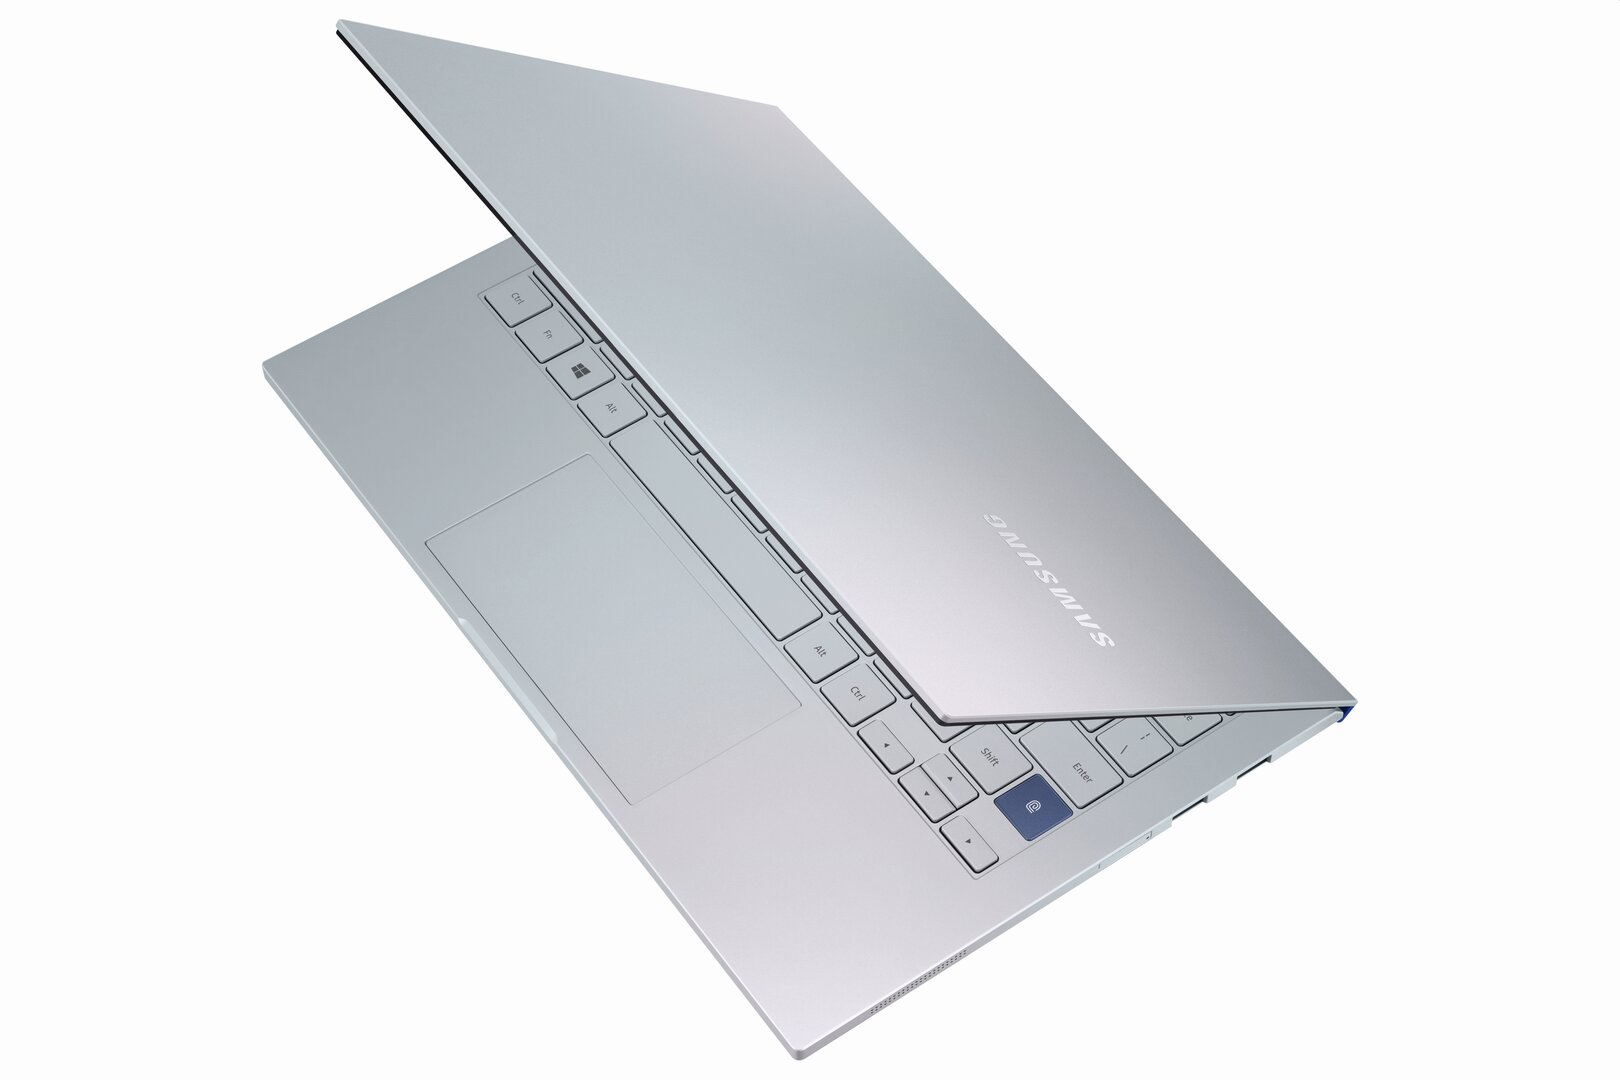 Samsung Galaxy Book Ion